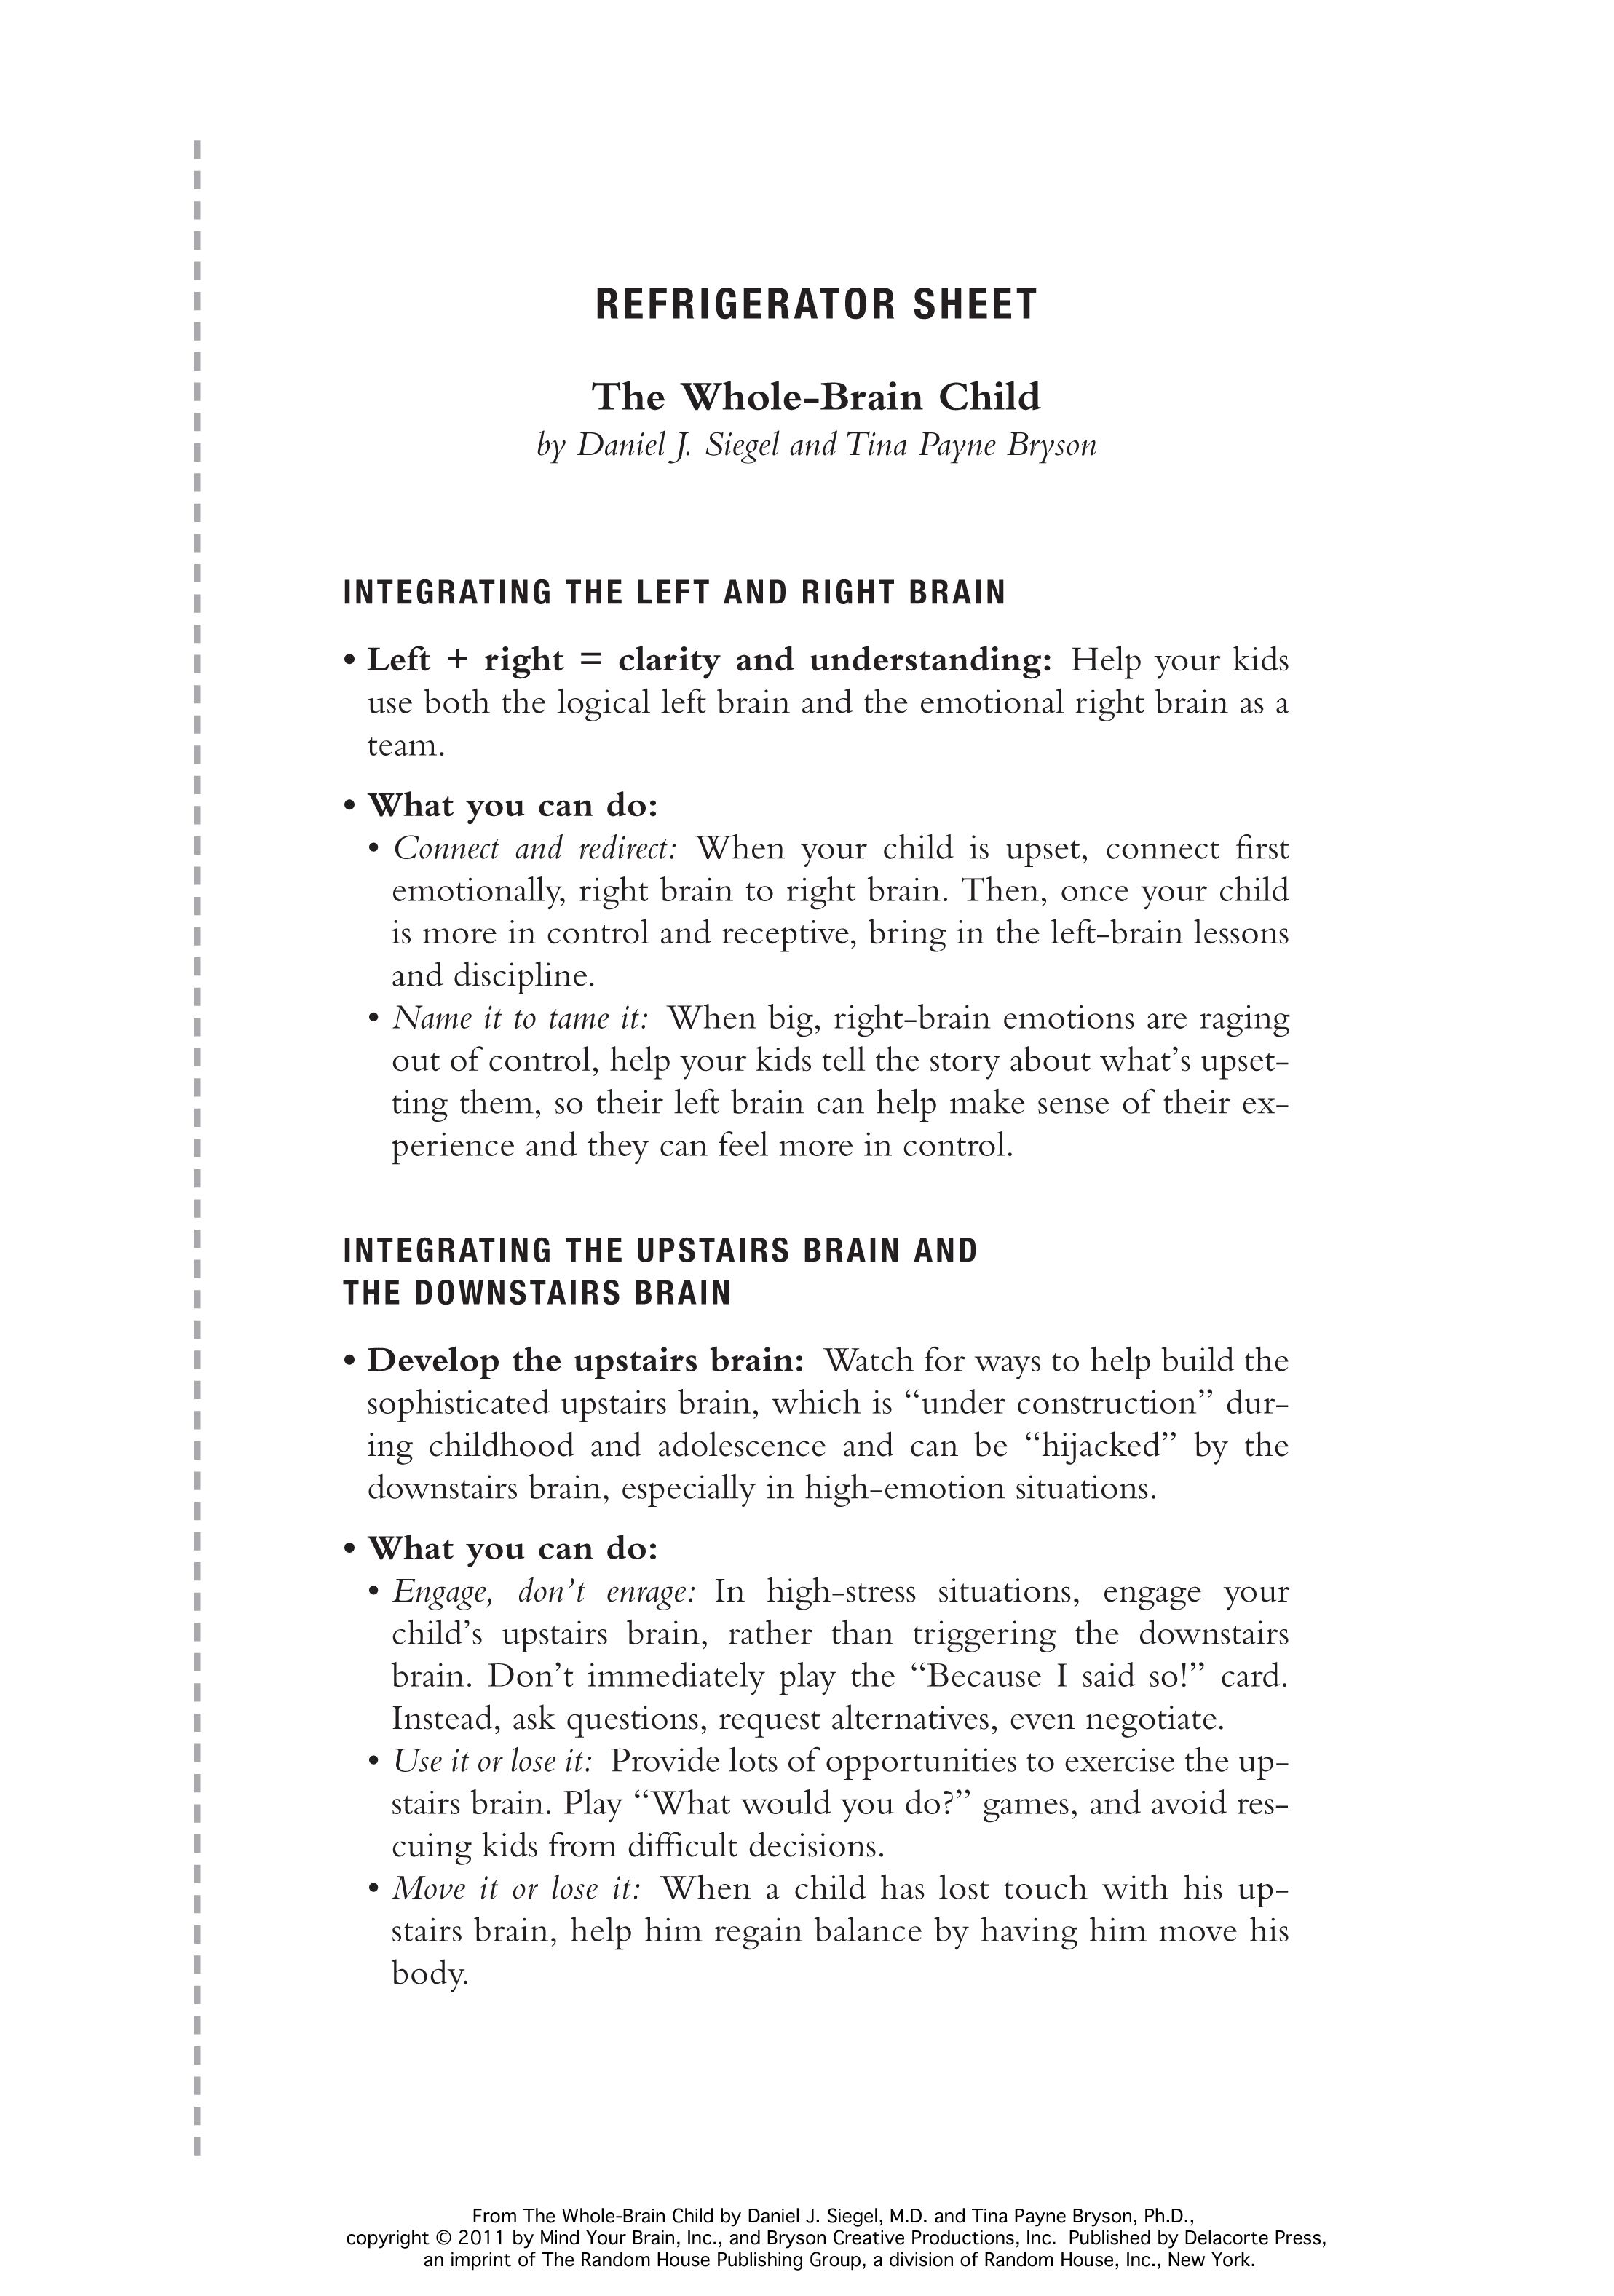 Extended Ebook Content For The Whole Brain Child Refrigerator Sheet